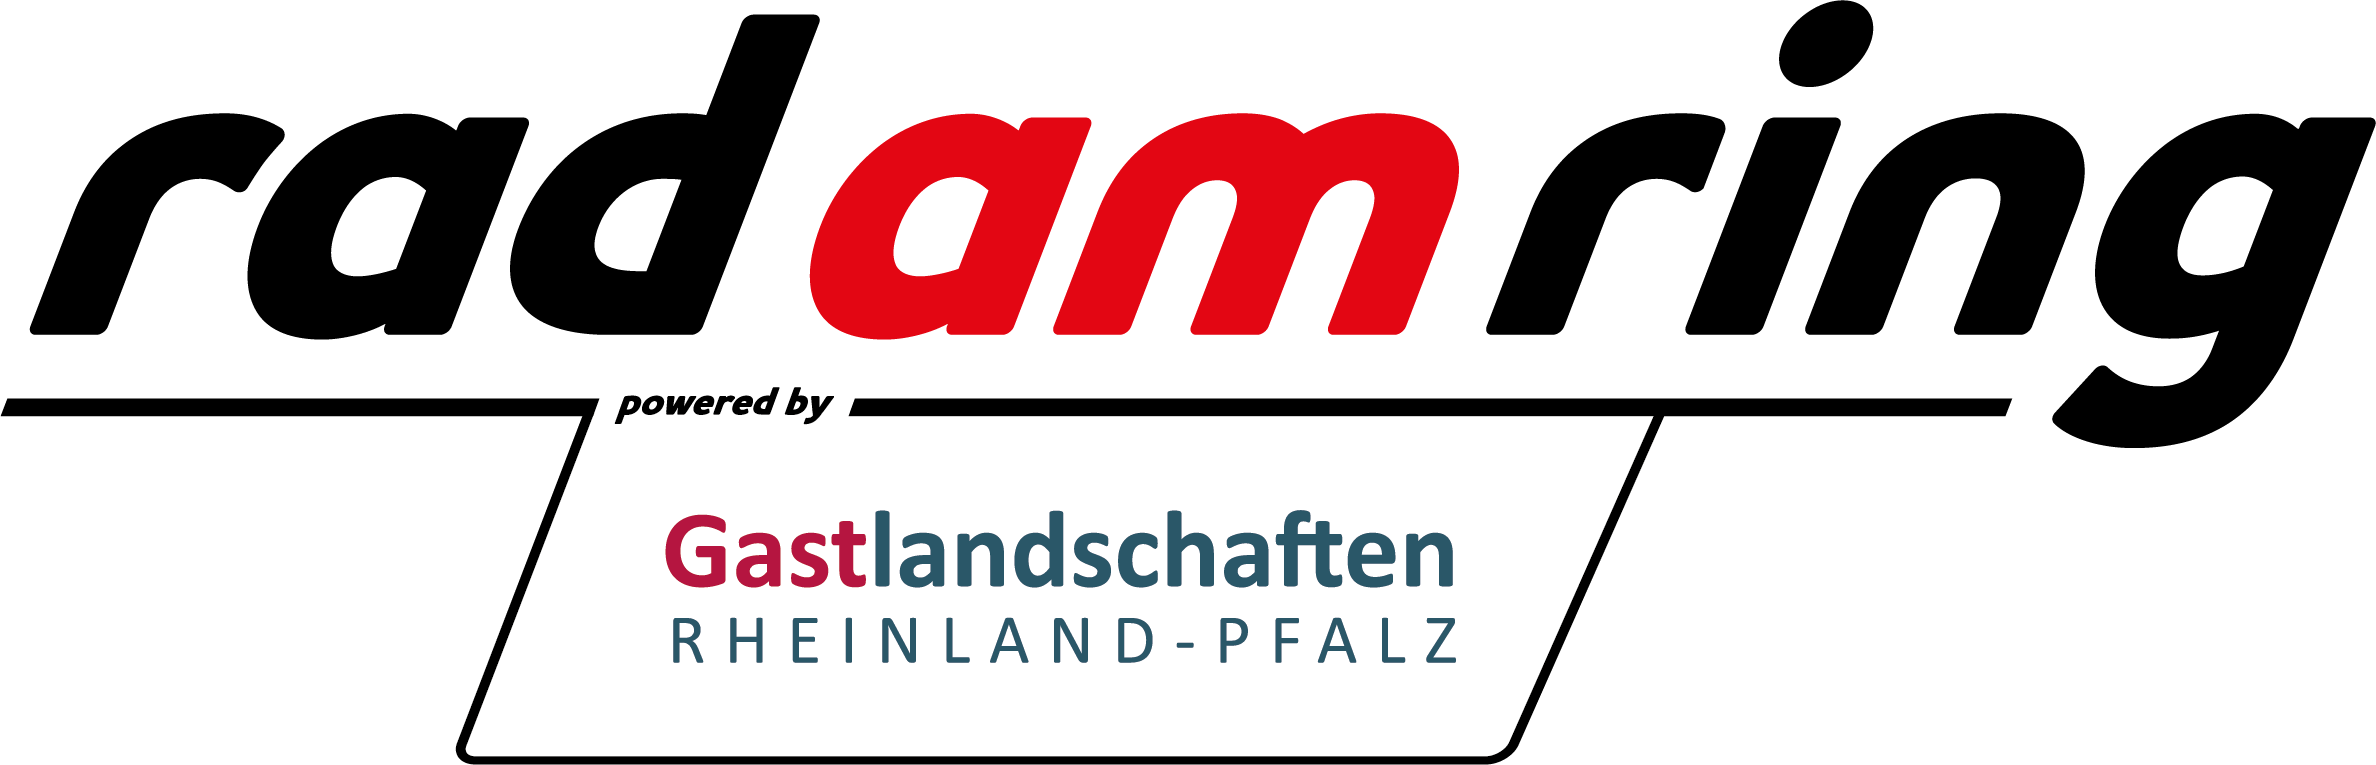 rad-am-ring